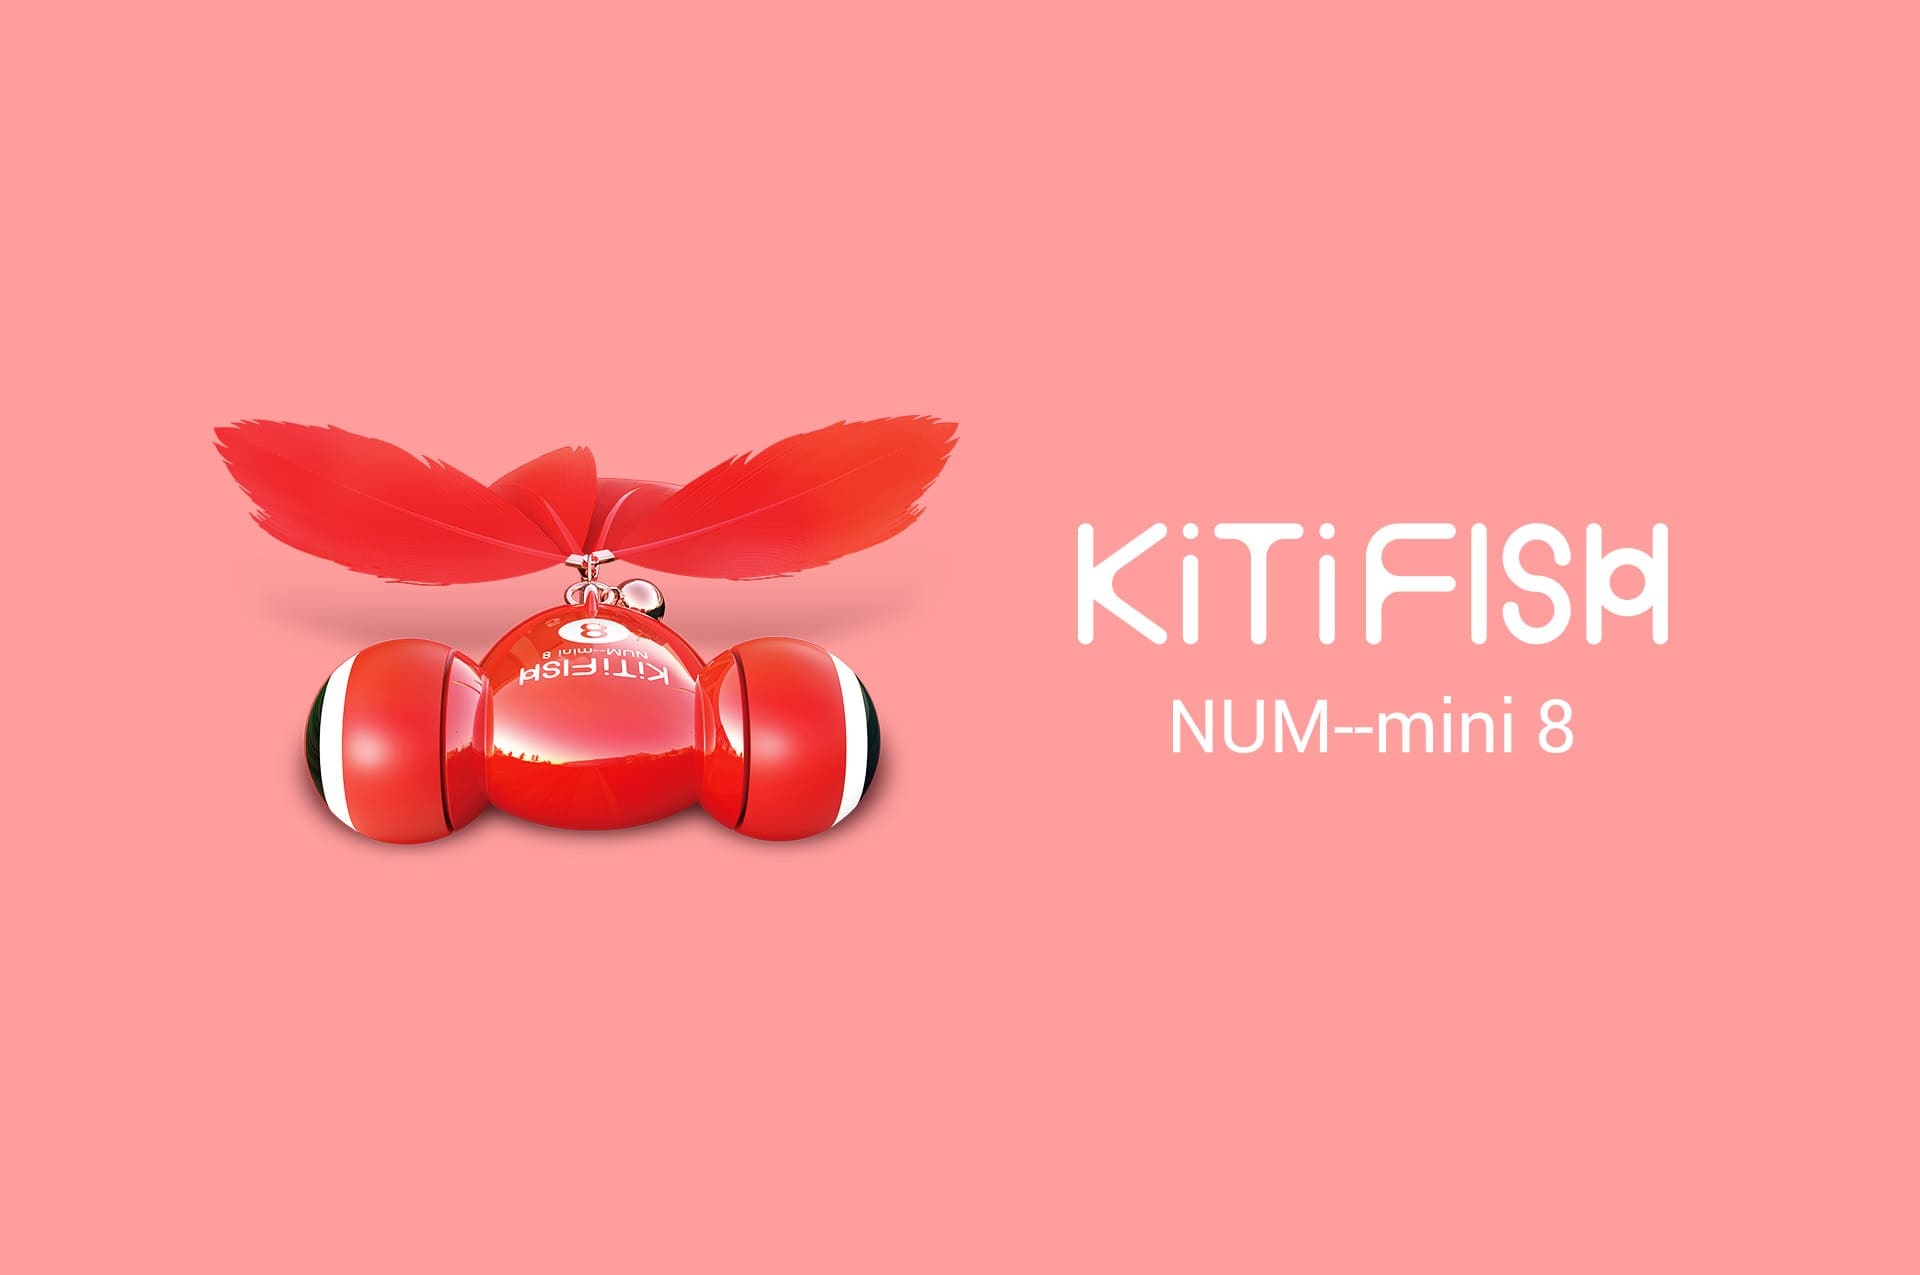 (50% OFF New Arrival Promotion) MAYMAW® KiTiFISH Smart Cat Toy Automatic Flips & Flops Like a Goldfish